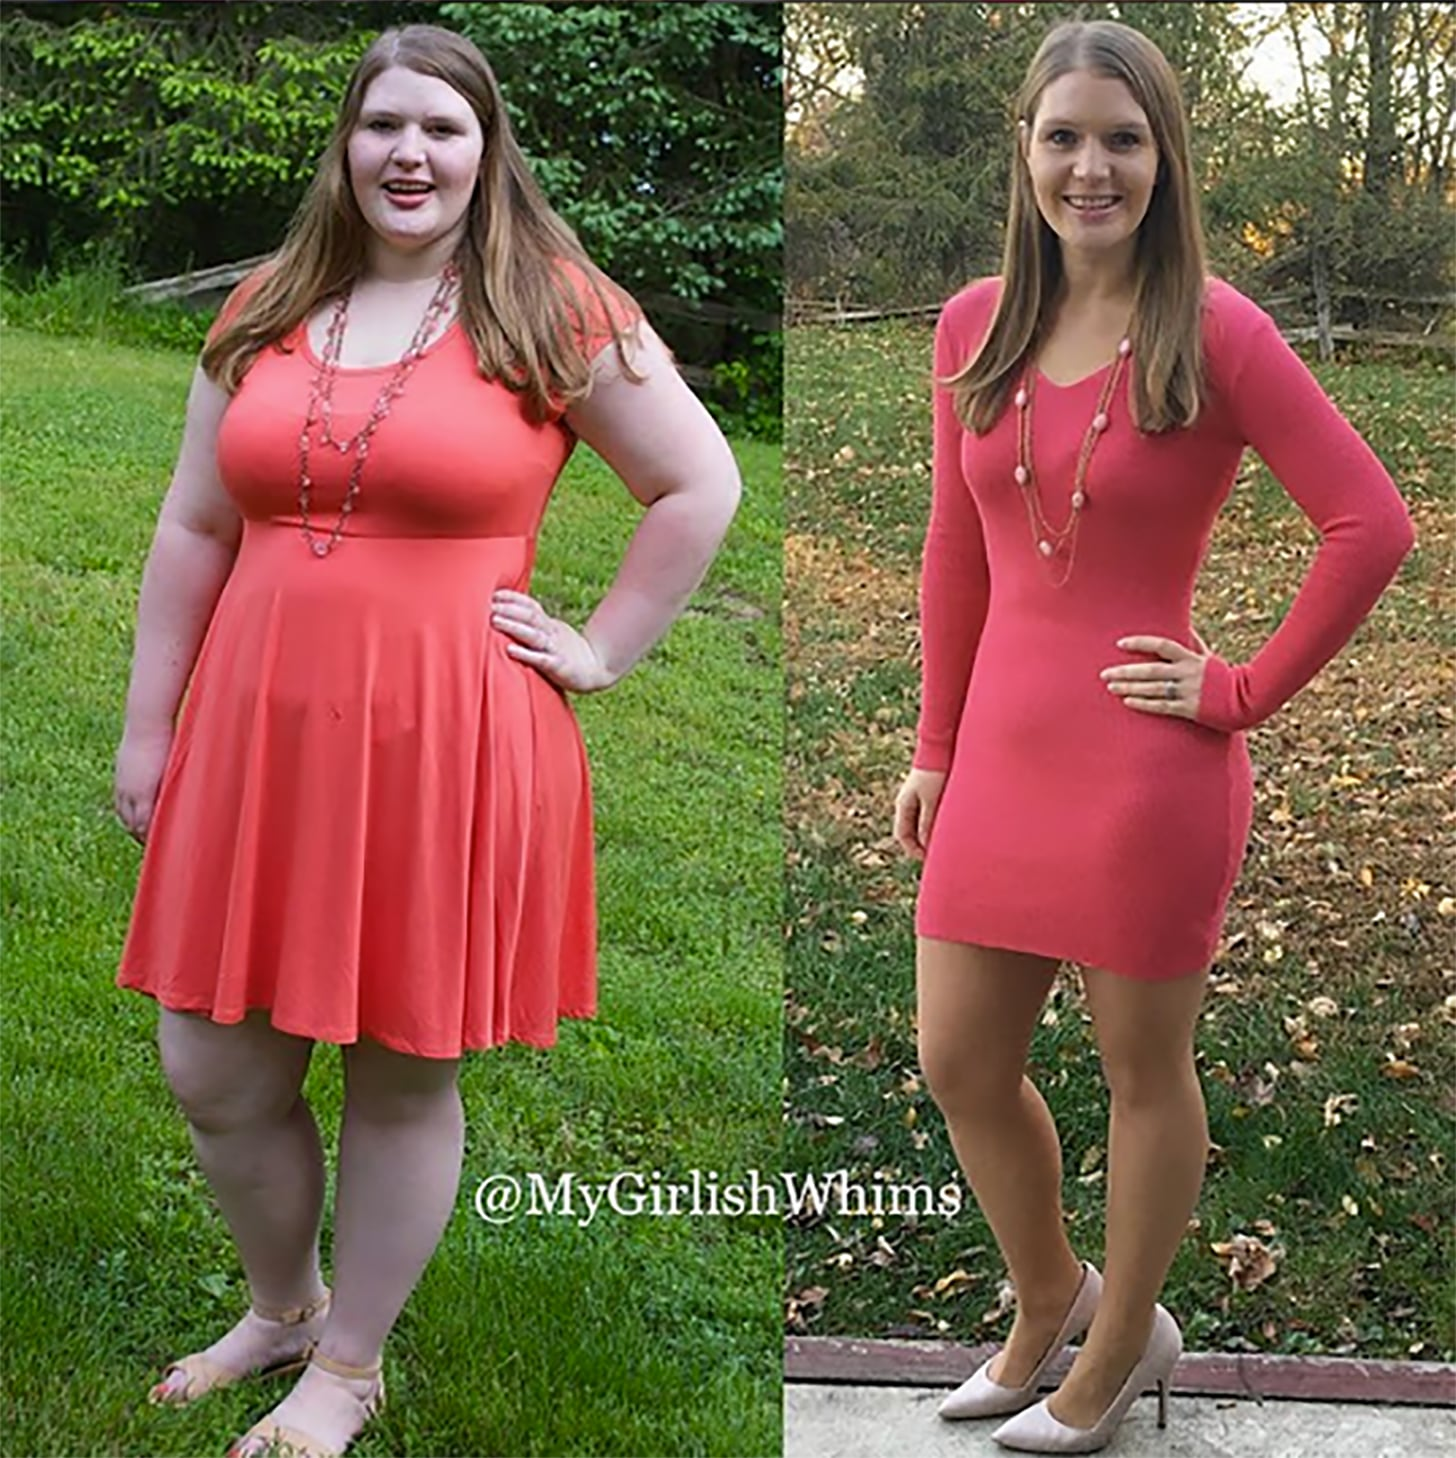 100 pound weight loss popsugar fitness after scheduling a vacation to go to jamaica in may rebecca began her weight loss journey on january 13 2014 she said i didnt want to look back on all ccuart Images